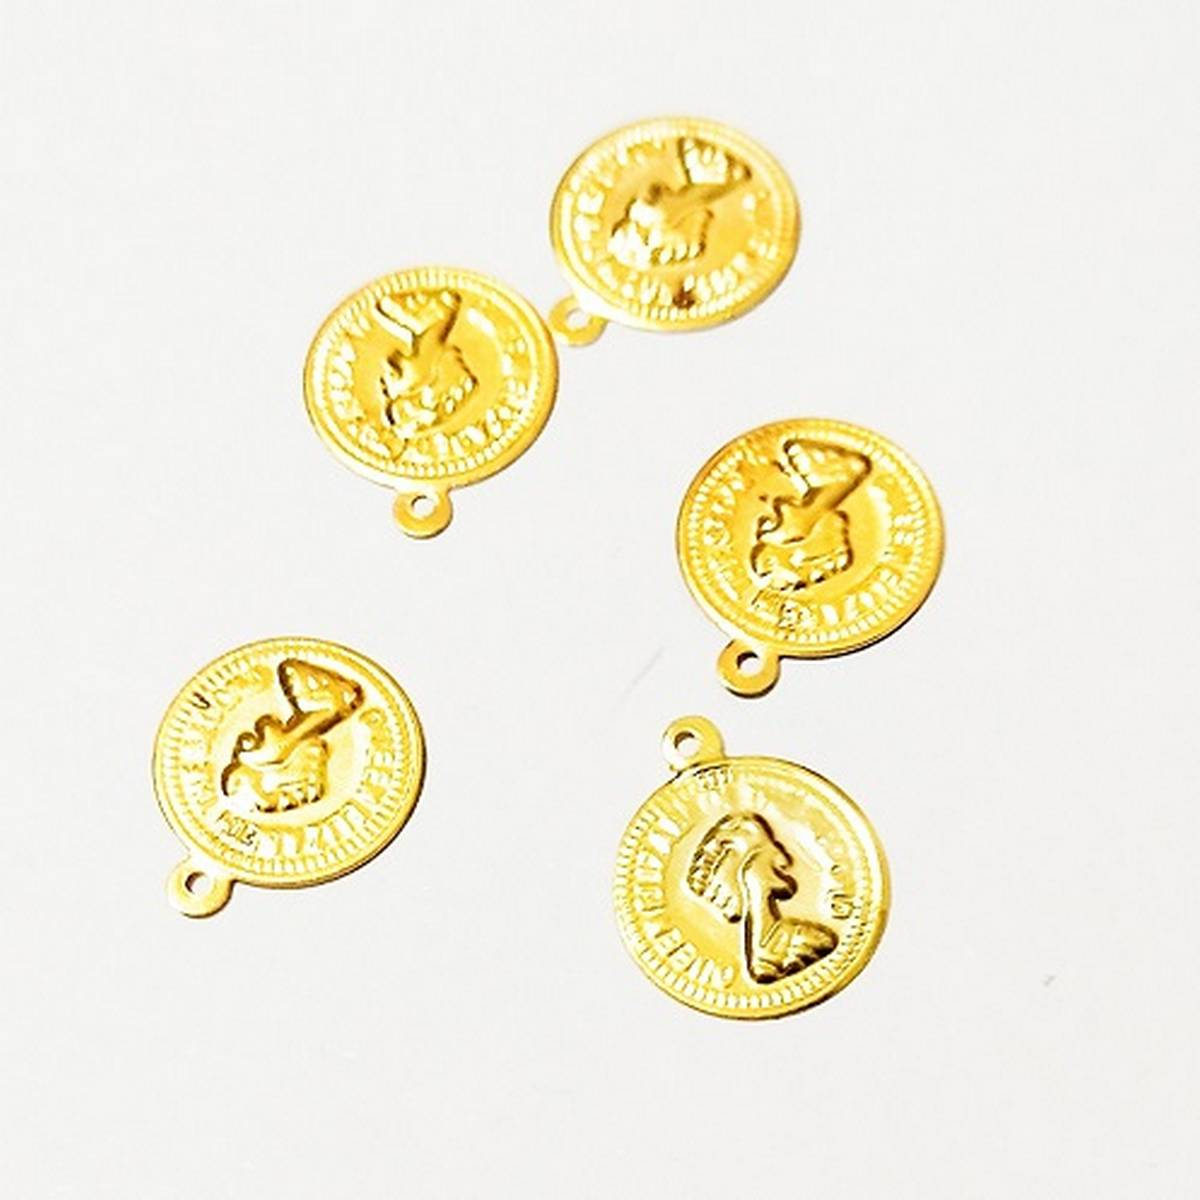 5 Pieces/Set Golden coin Charms Jewelry Making DIY Hand Made Jewelry findings